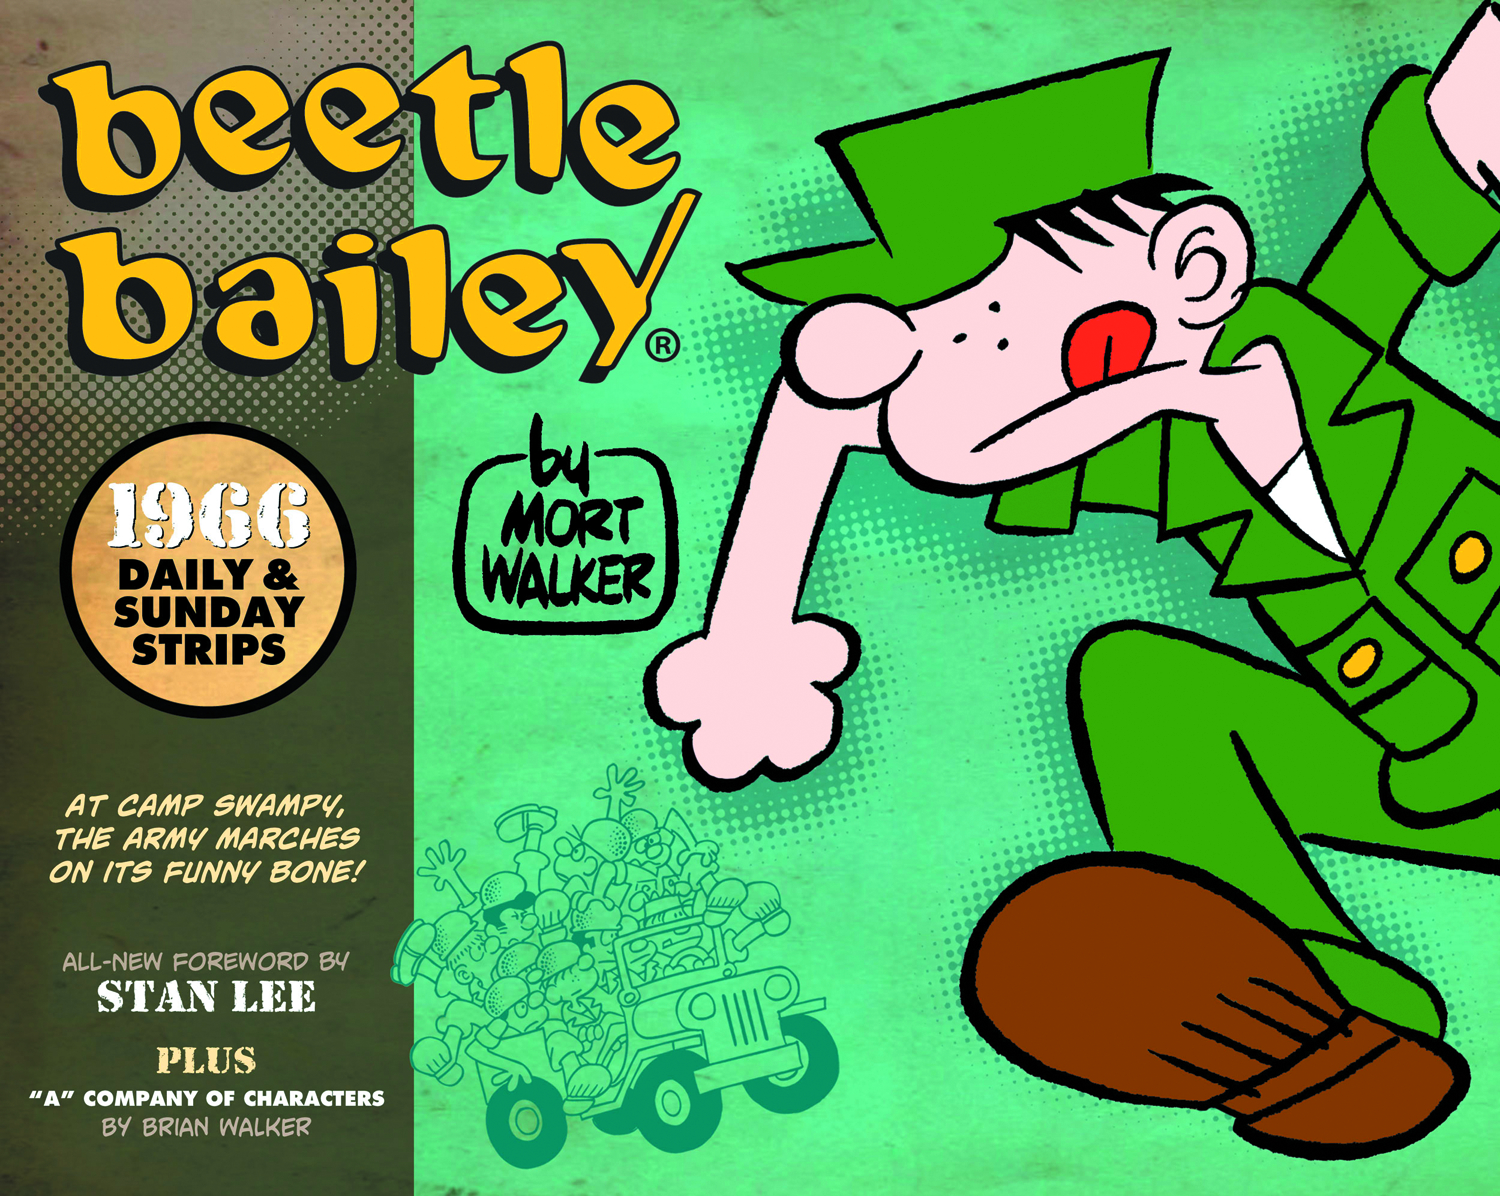 BEETLE BAILEY HC DAILIES & SUNDAYS 1966